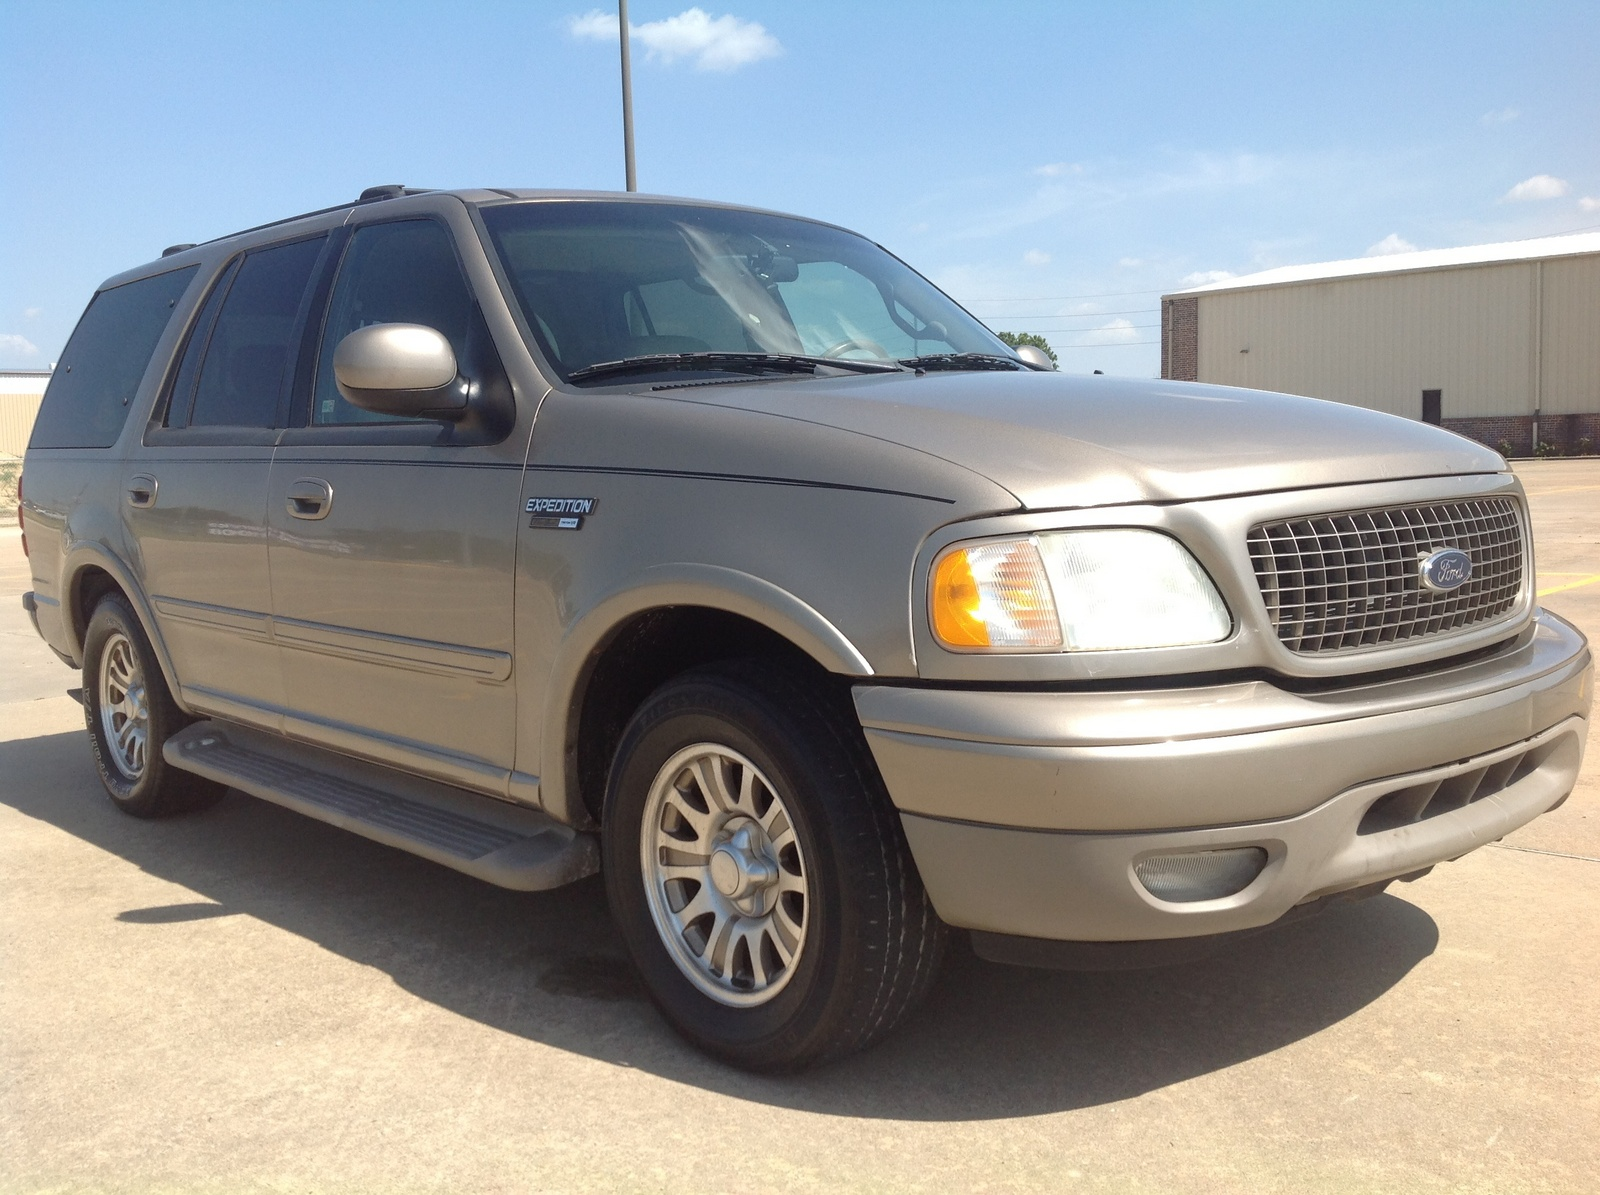 Ford Expedition 2002 foto - 3